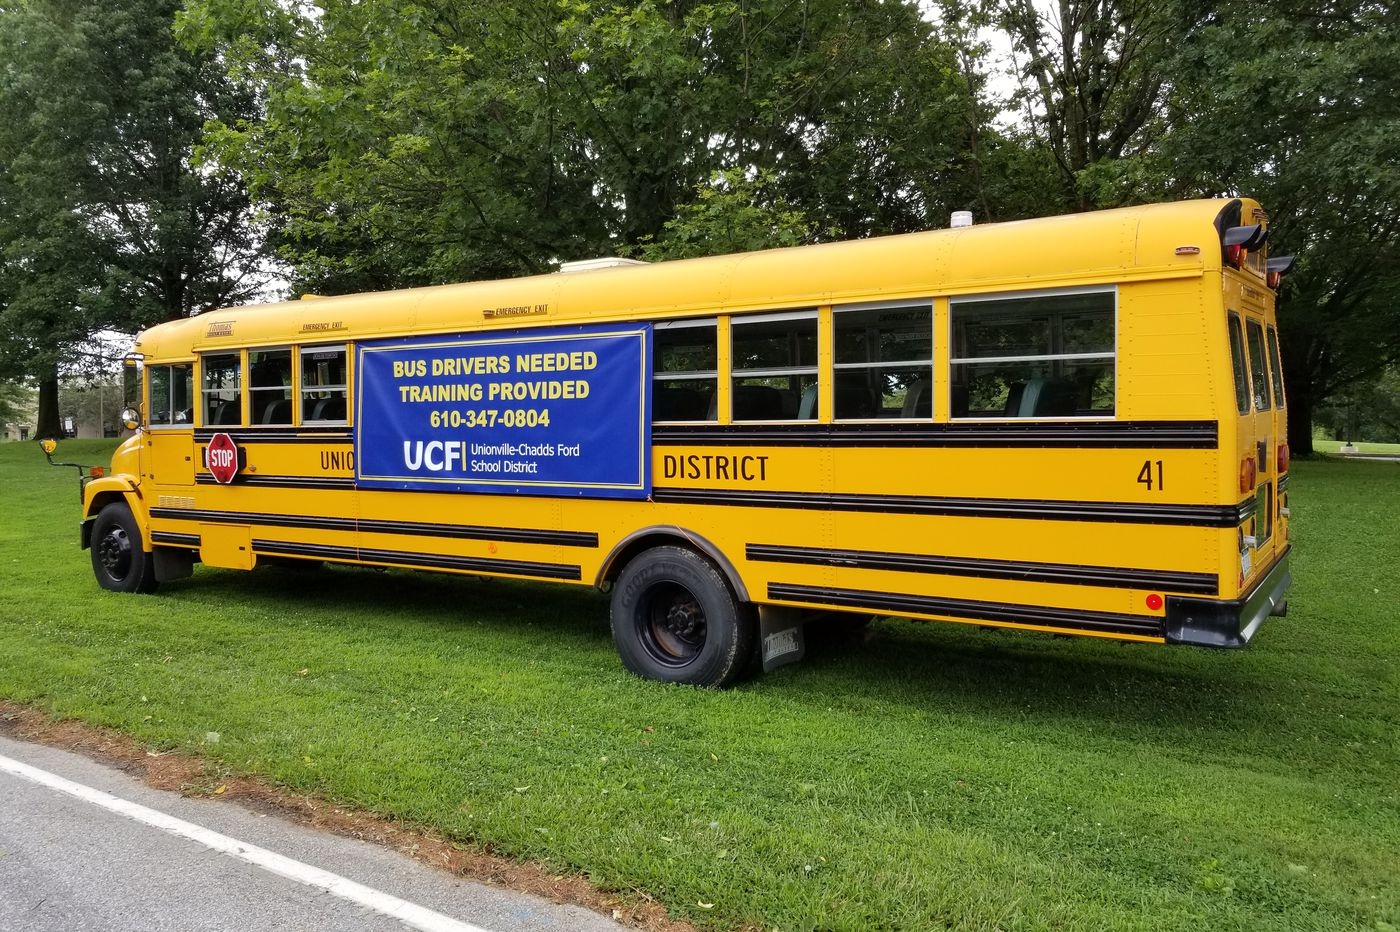 School bus driver shortage squeezes districts around the region